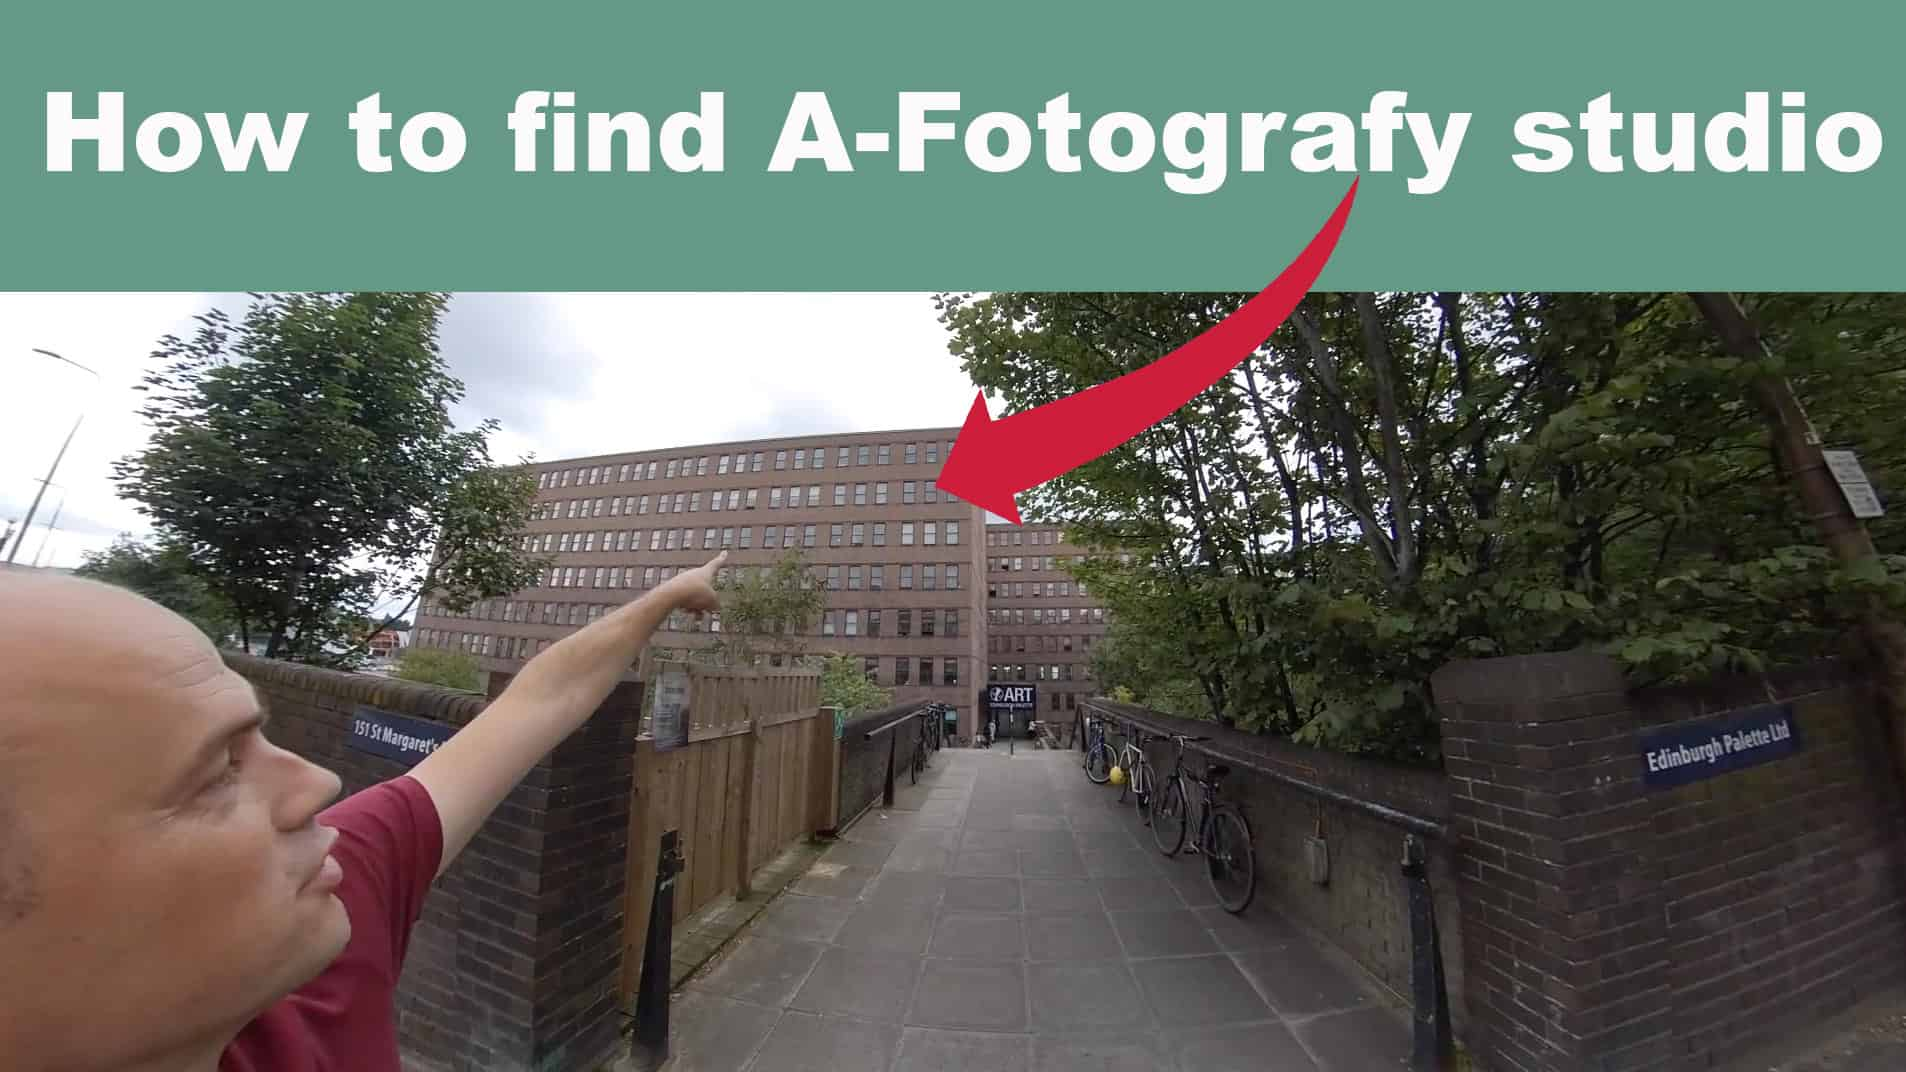 Directions on how to find Edinburgh photography studio